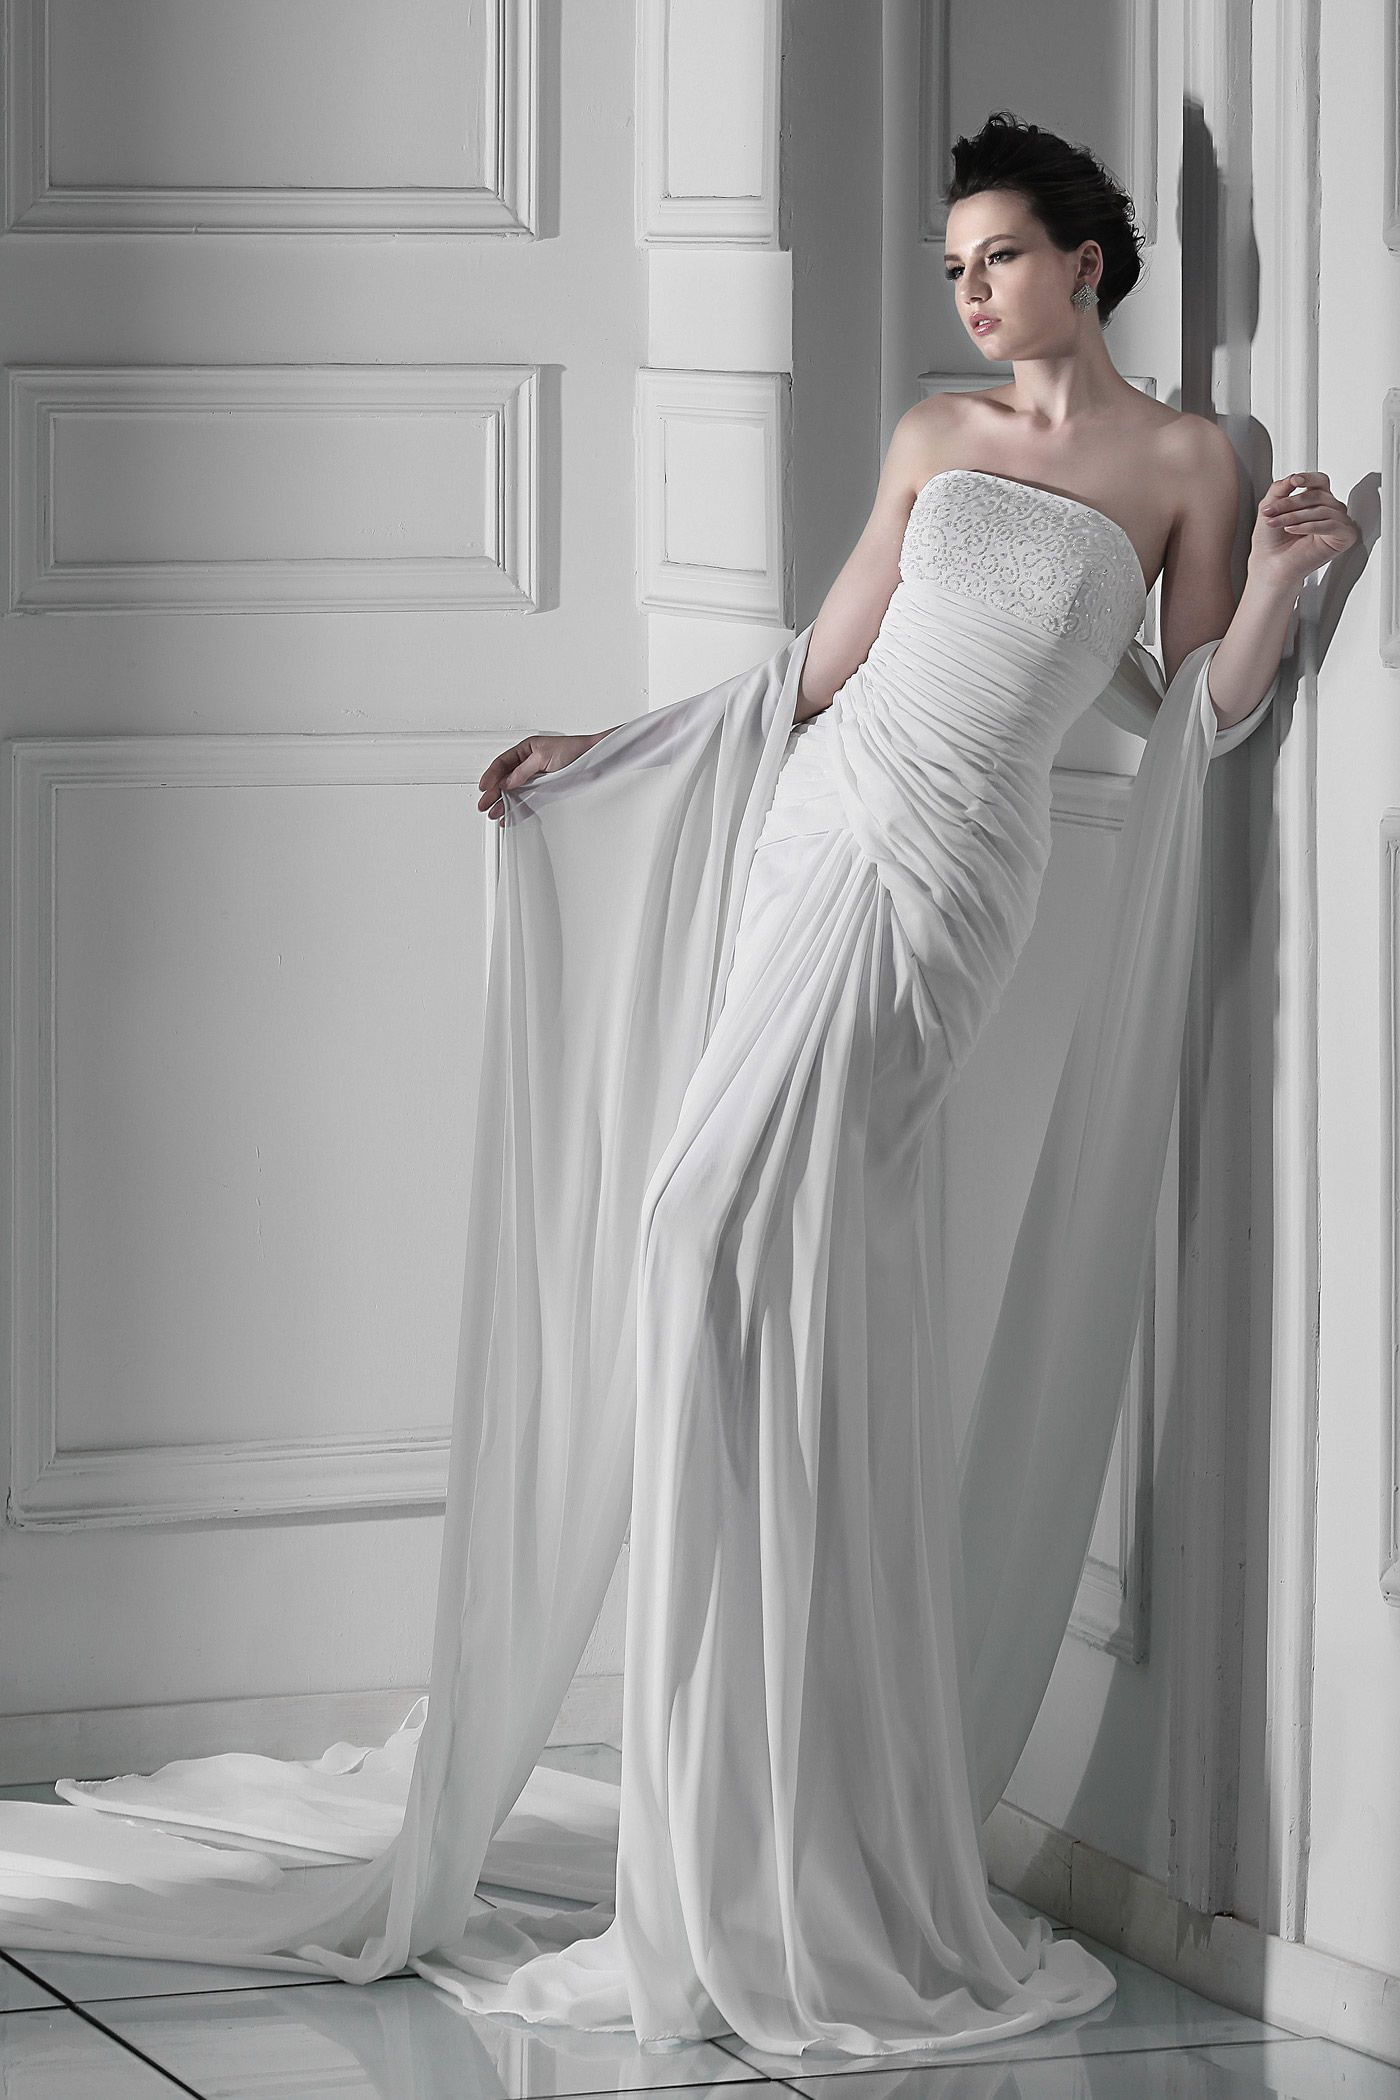 Grecian toga style wedding dress pinterest gowns wedding